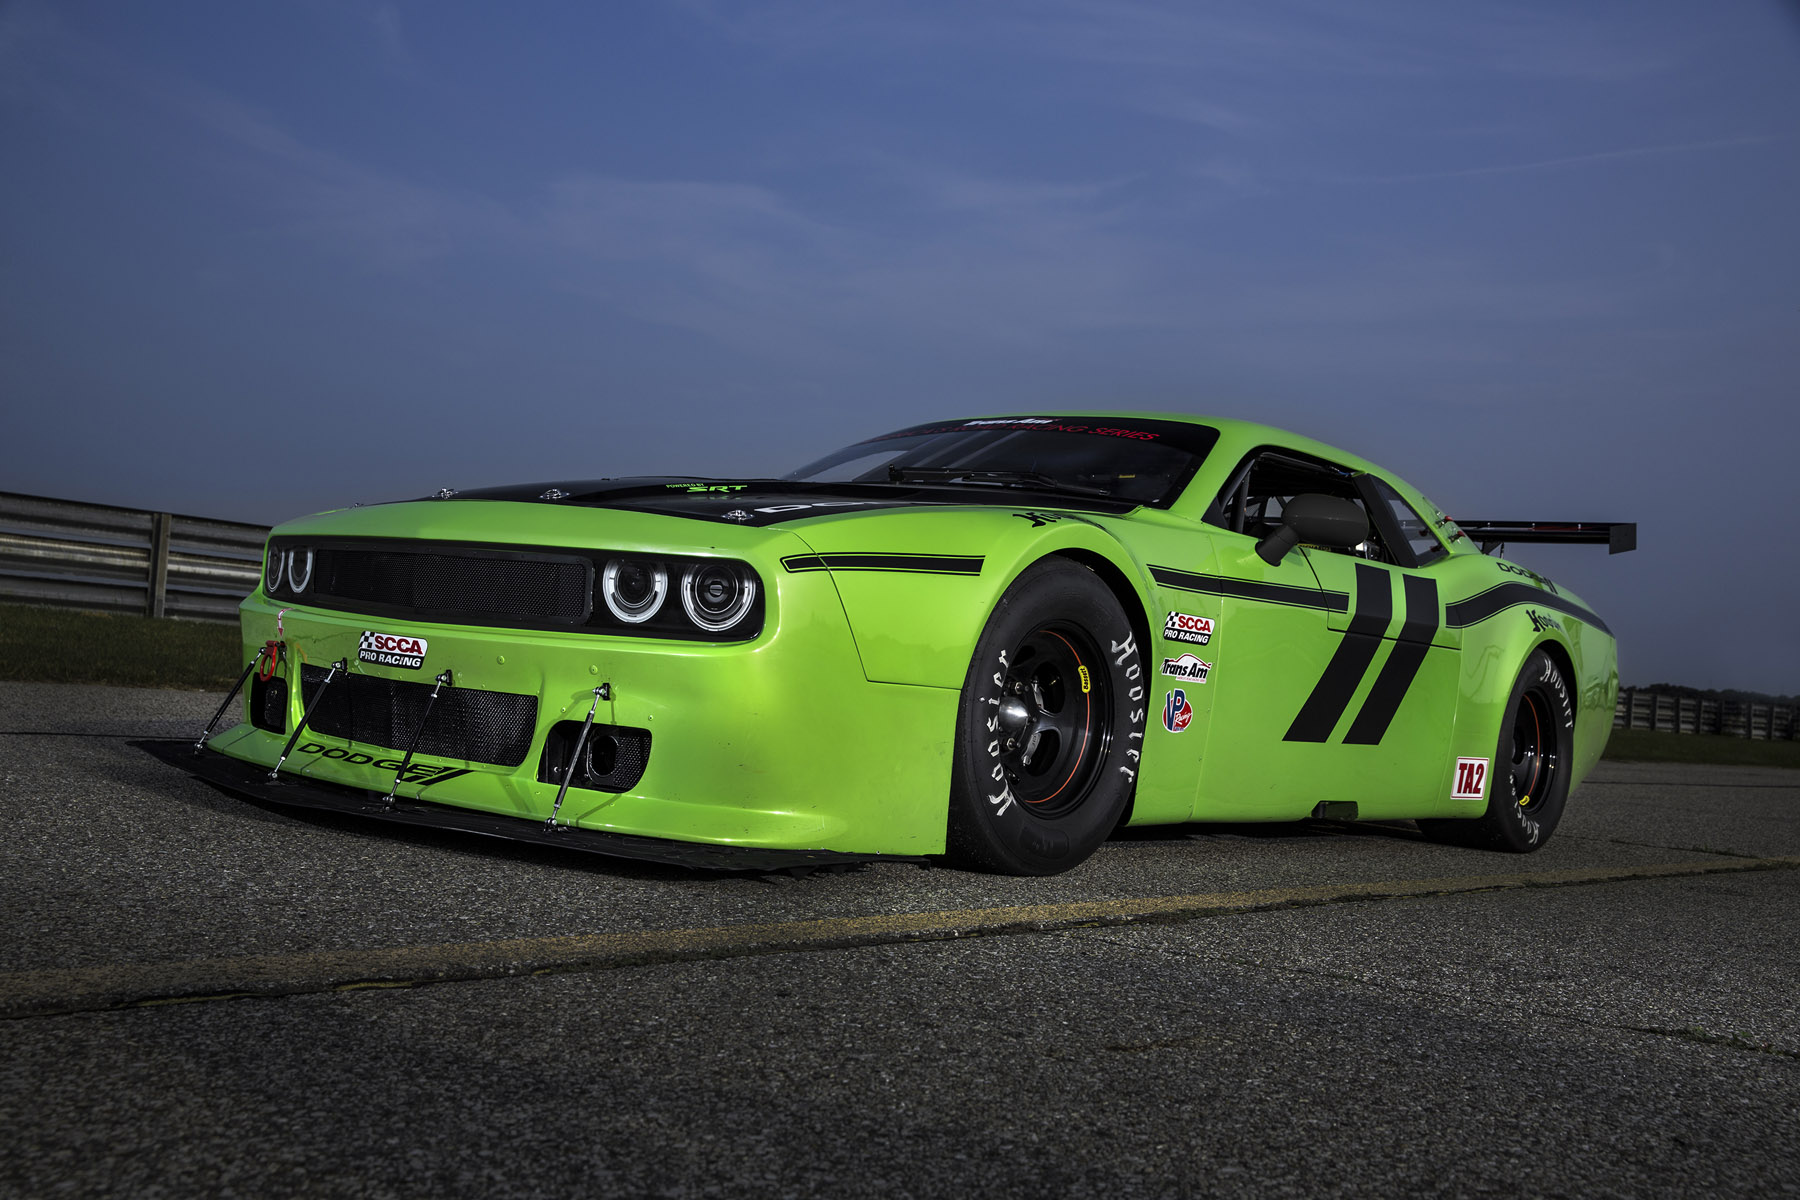 Dodge Charger Srt Hellcat >> See Dodge Challenger in 'Furious 7' [VIDEO]